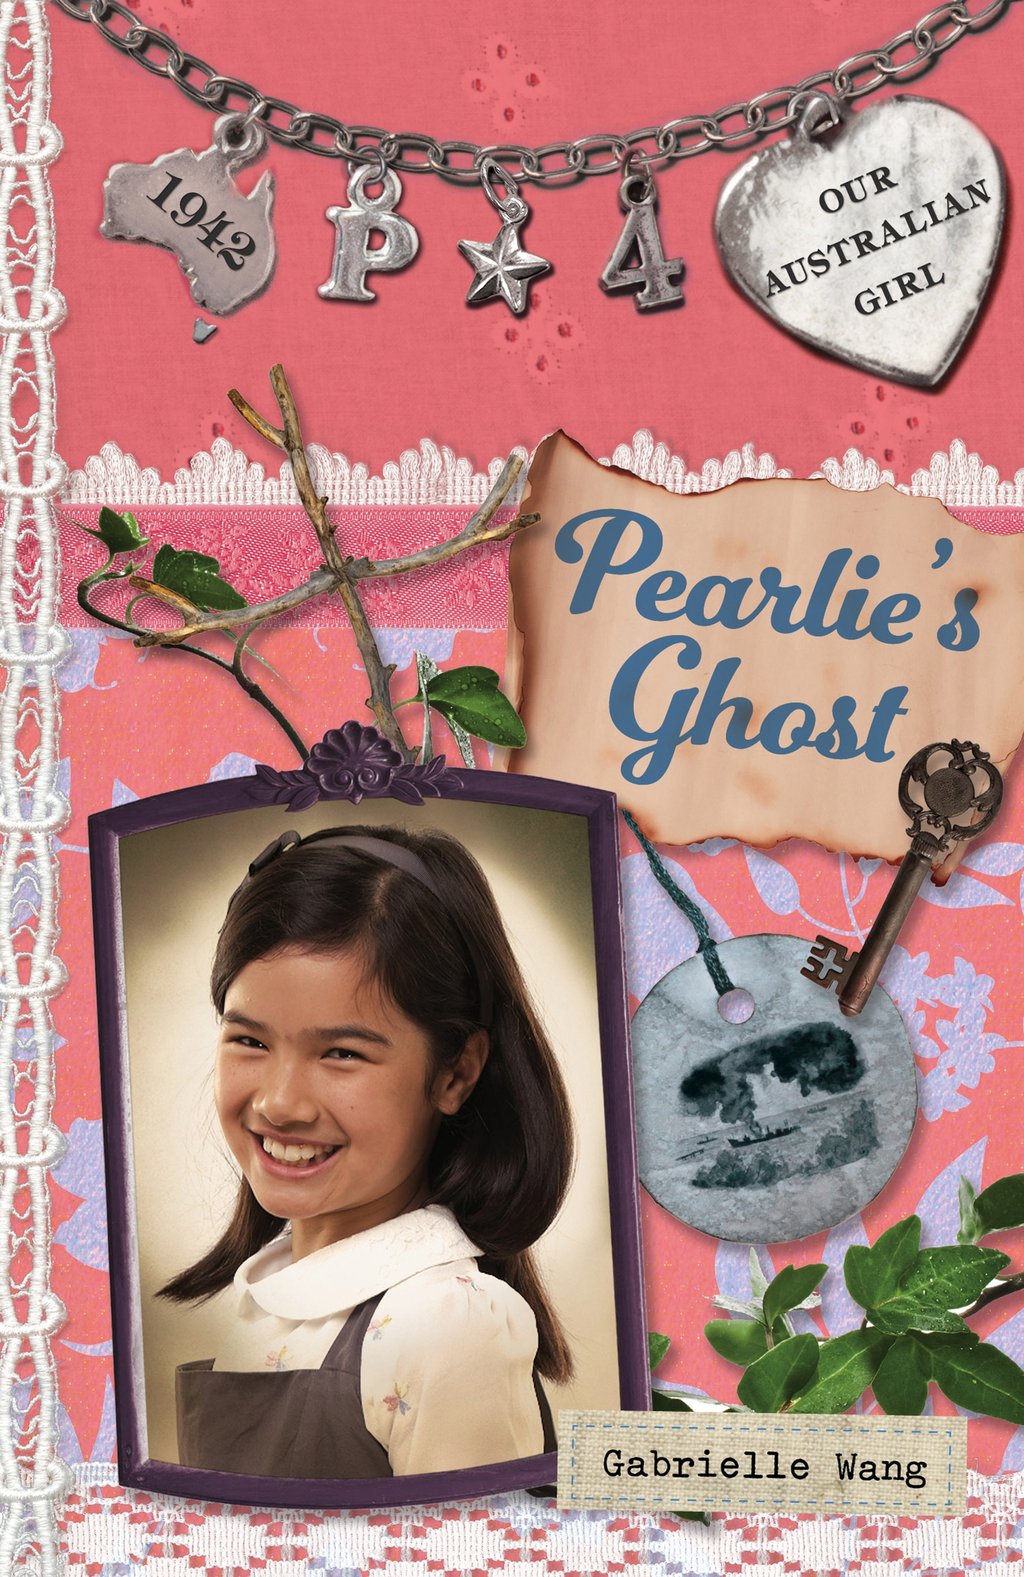 Pearlie's Ghost Our Australian Girl